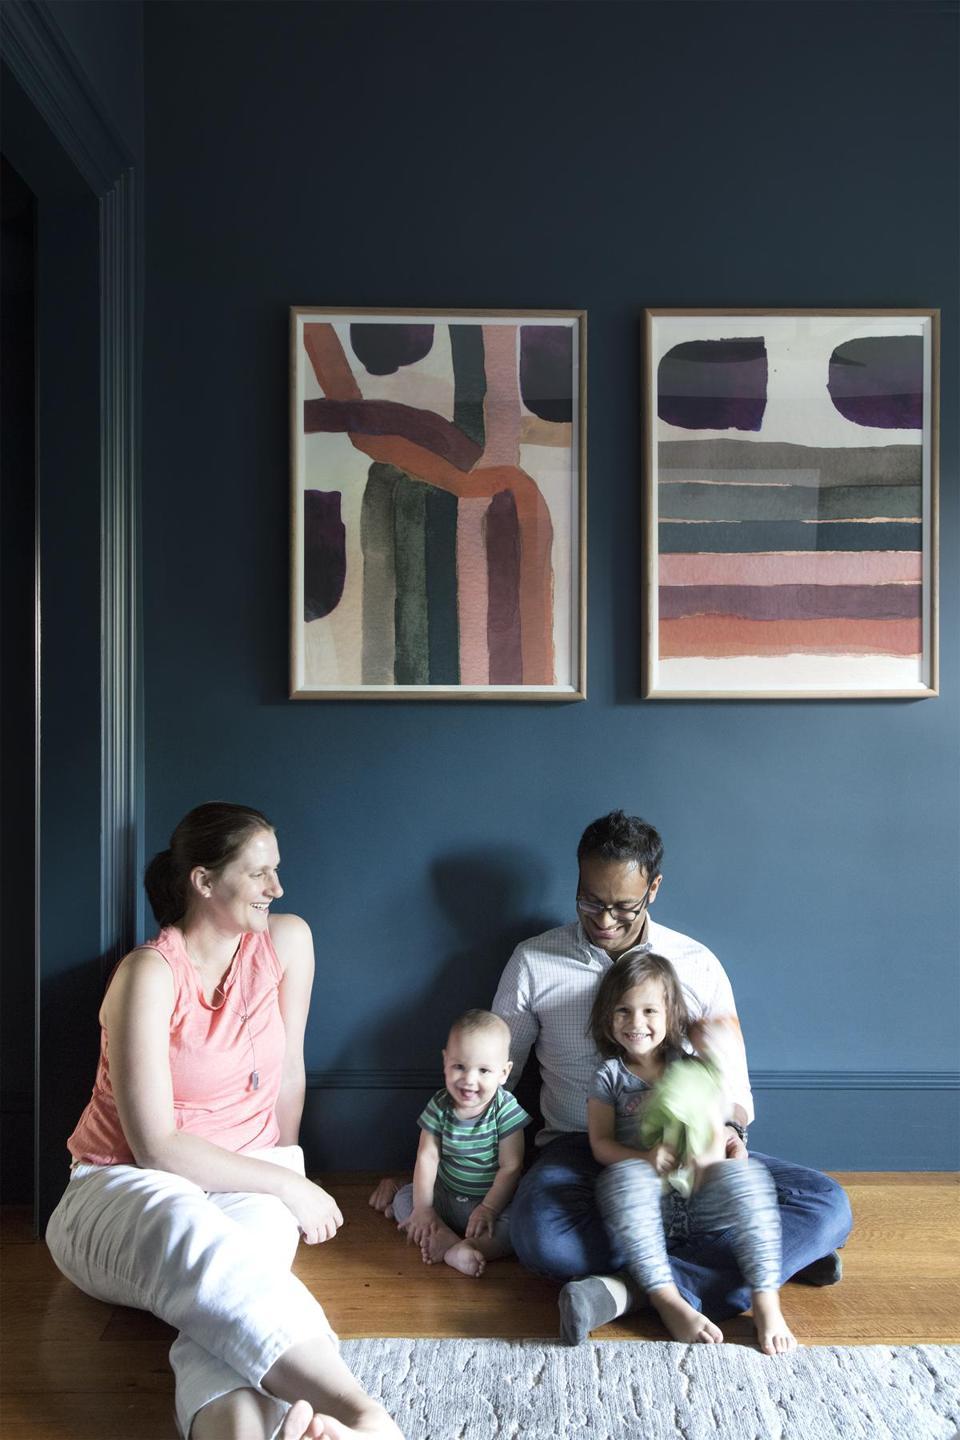 Melissa Spencer, Raj Basu, and their children relax in the master bedroom, where limited-edition abstract prints from Zoe Bios Creative add a pop of color.